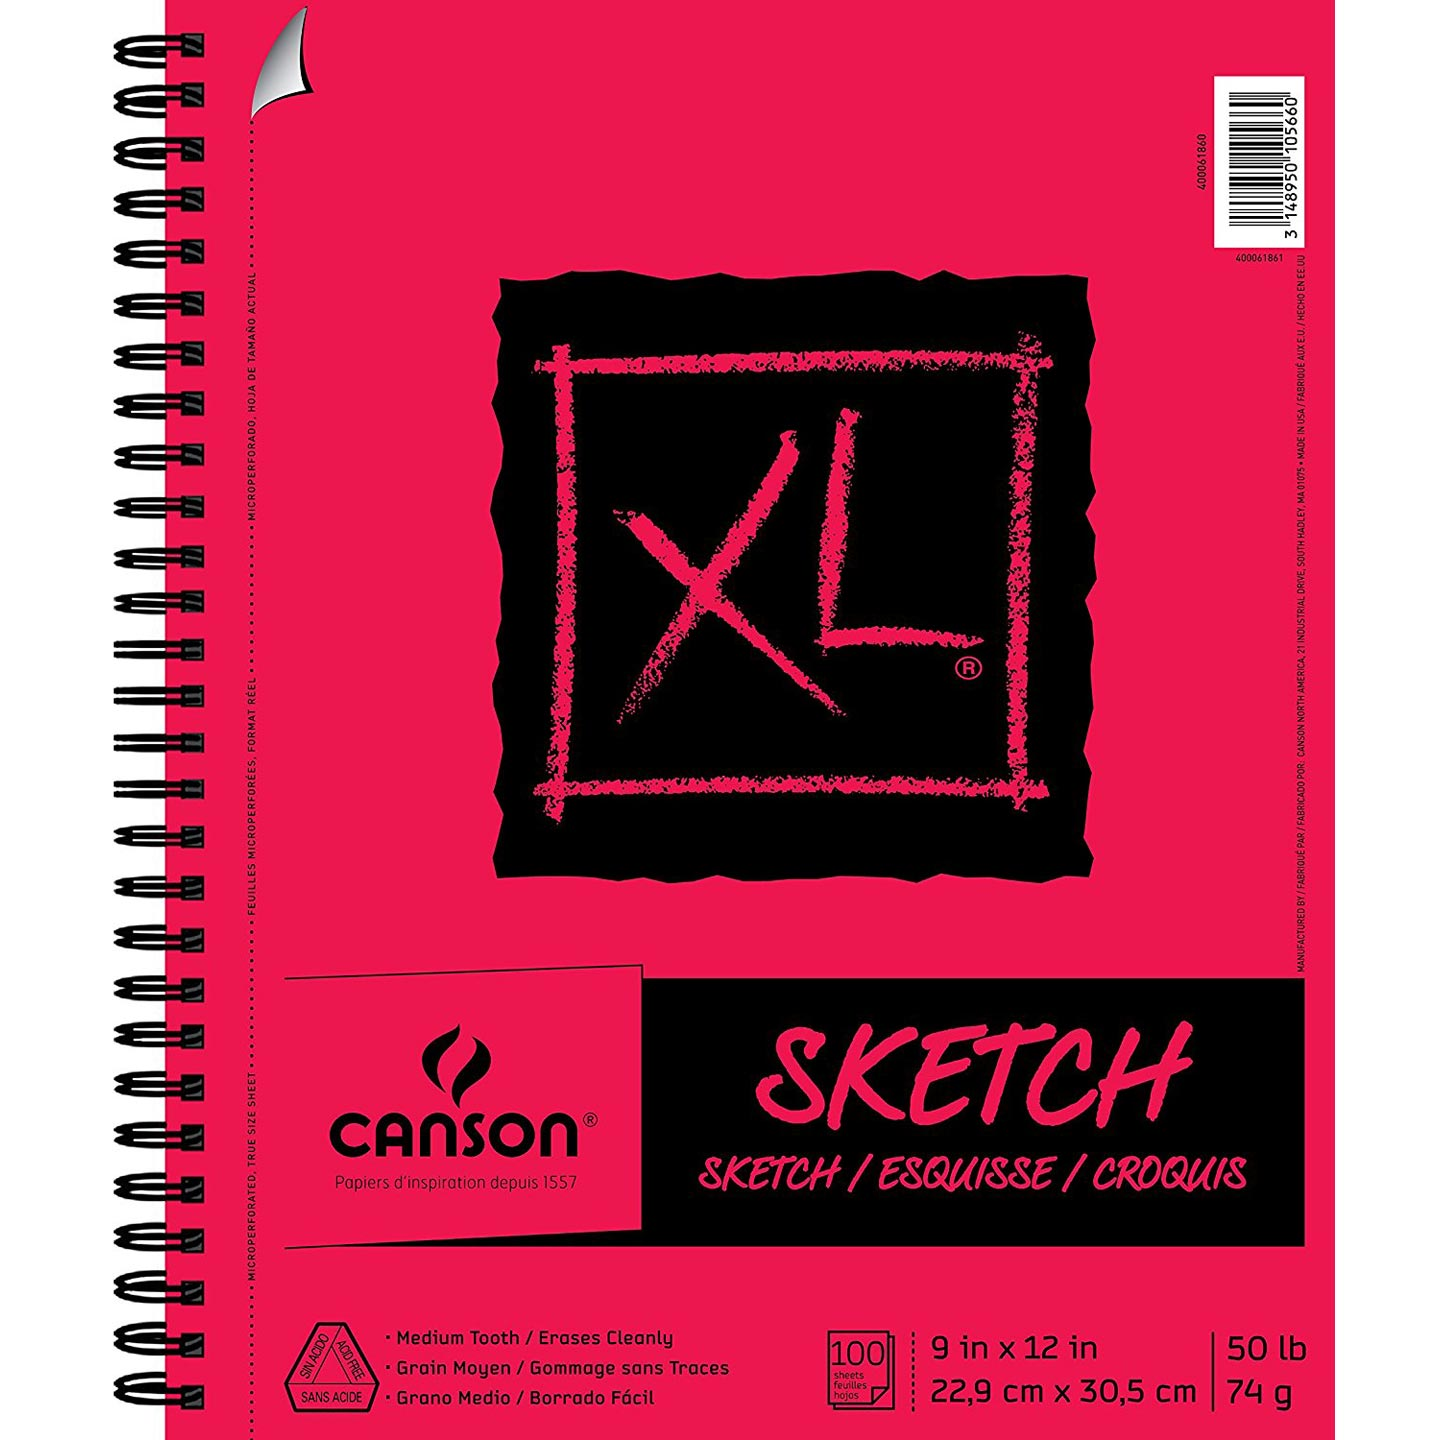 Canson XL Sketching Paper Pad: 9 x 12 inches